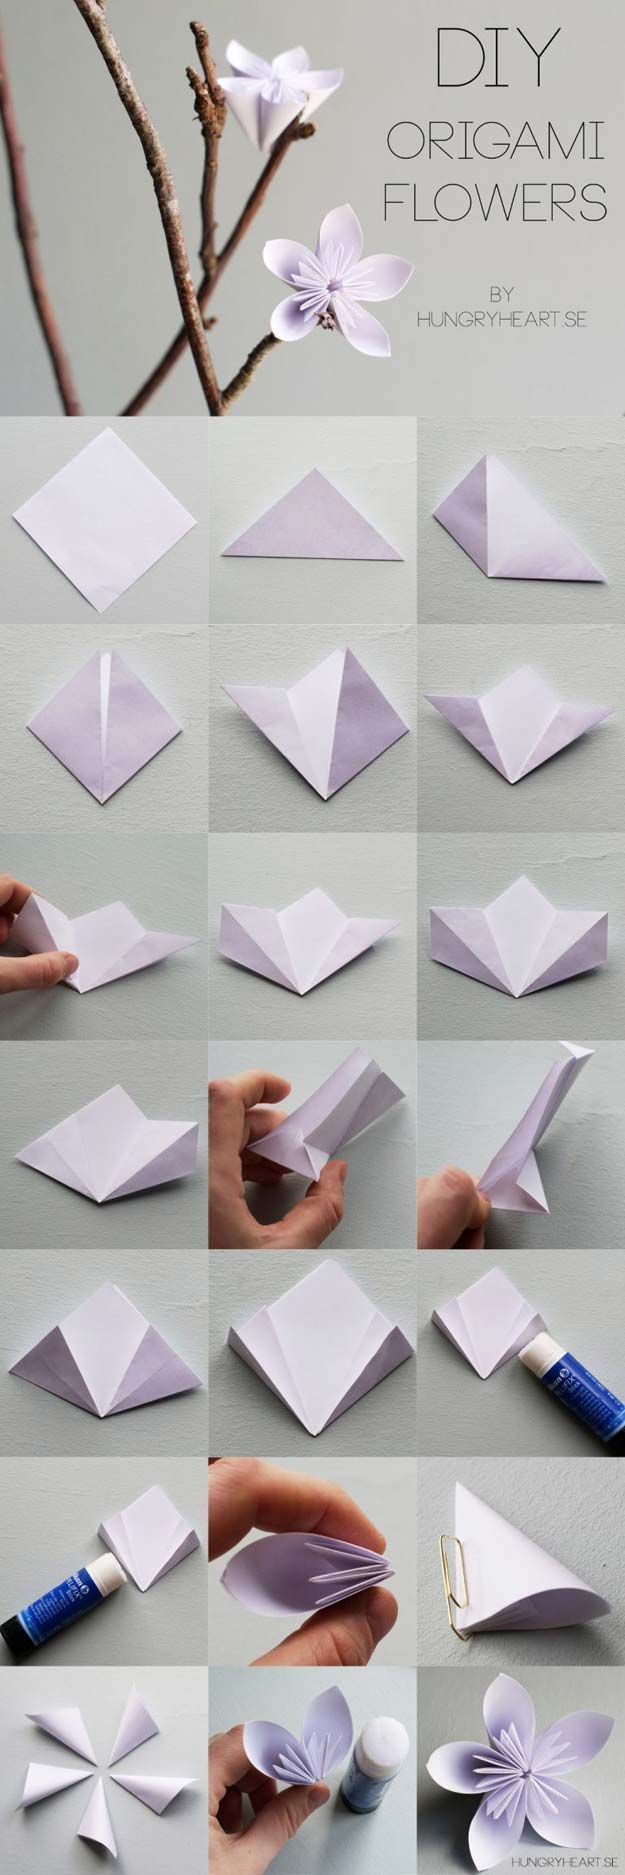 40 Best DIY Origami Projects To Keep Your Entertained Today Best Origami Tutorials  Flower Origami  Easy DIY Origami Tutorial Projects for With Instructions for Flowers D...